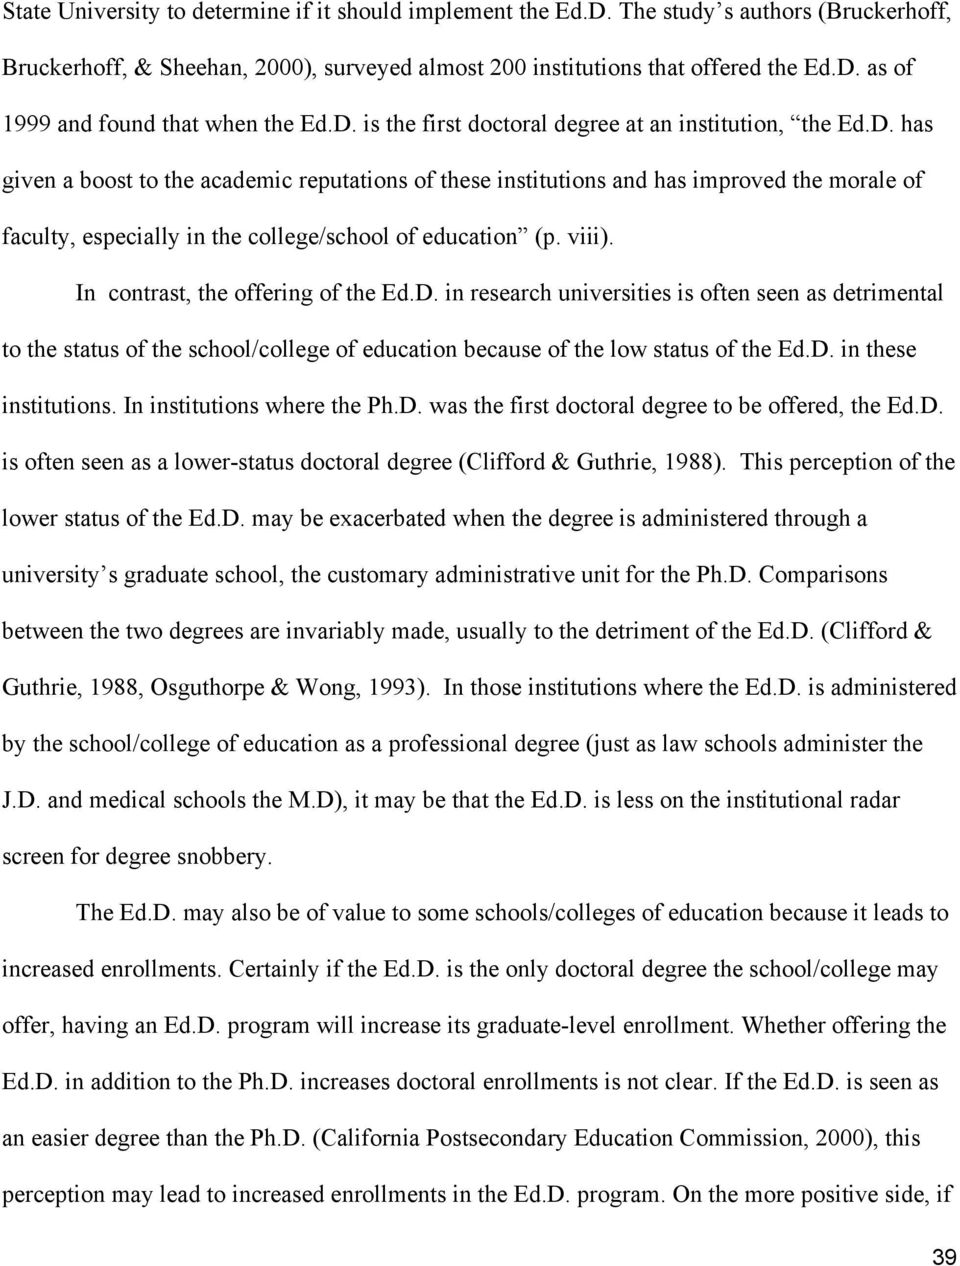 viii). In contrast, the offering of the Ed.D. in research universities is often seen as detrimental to the status of the school/college of education because of the low status of the Ed.D. in these institutions.